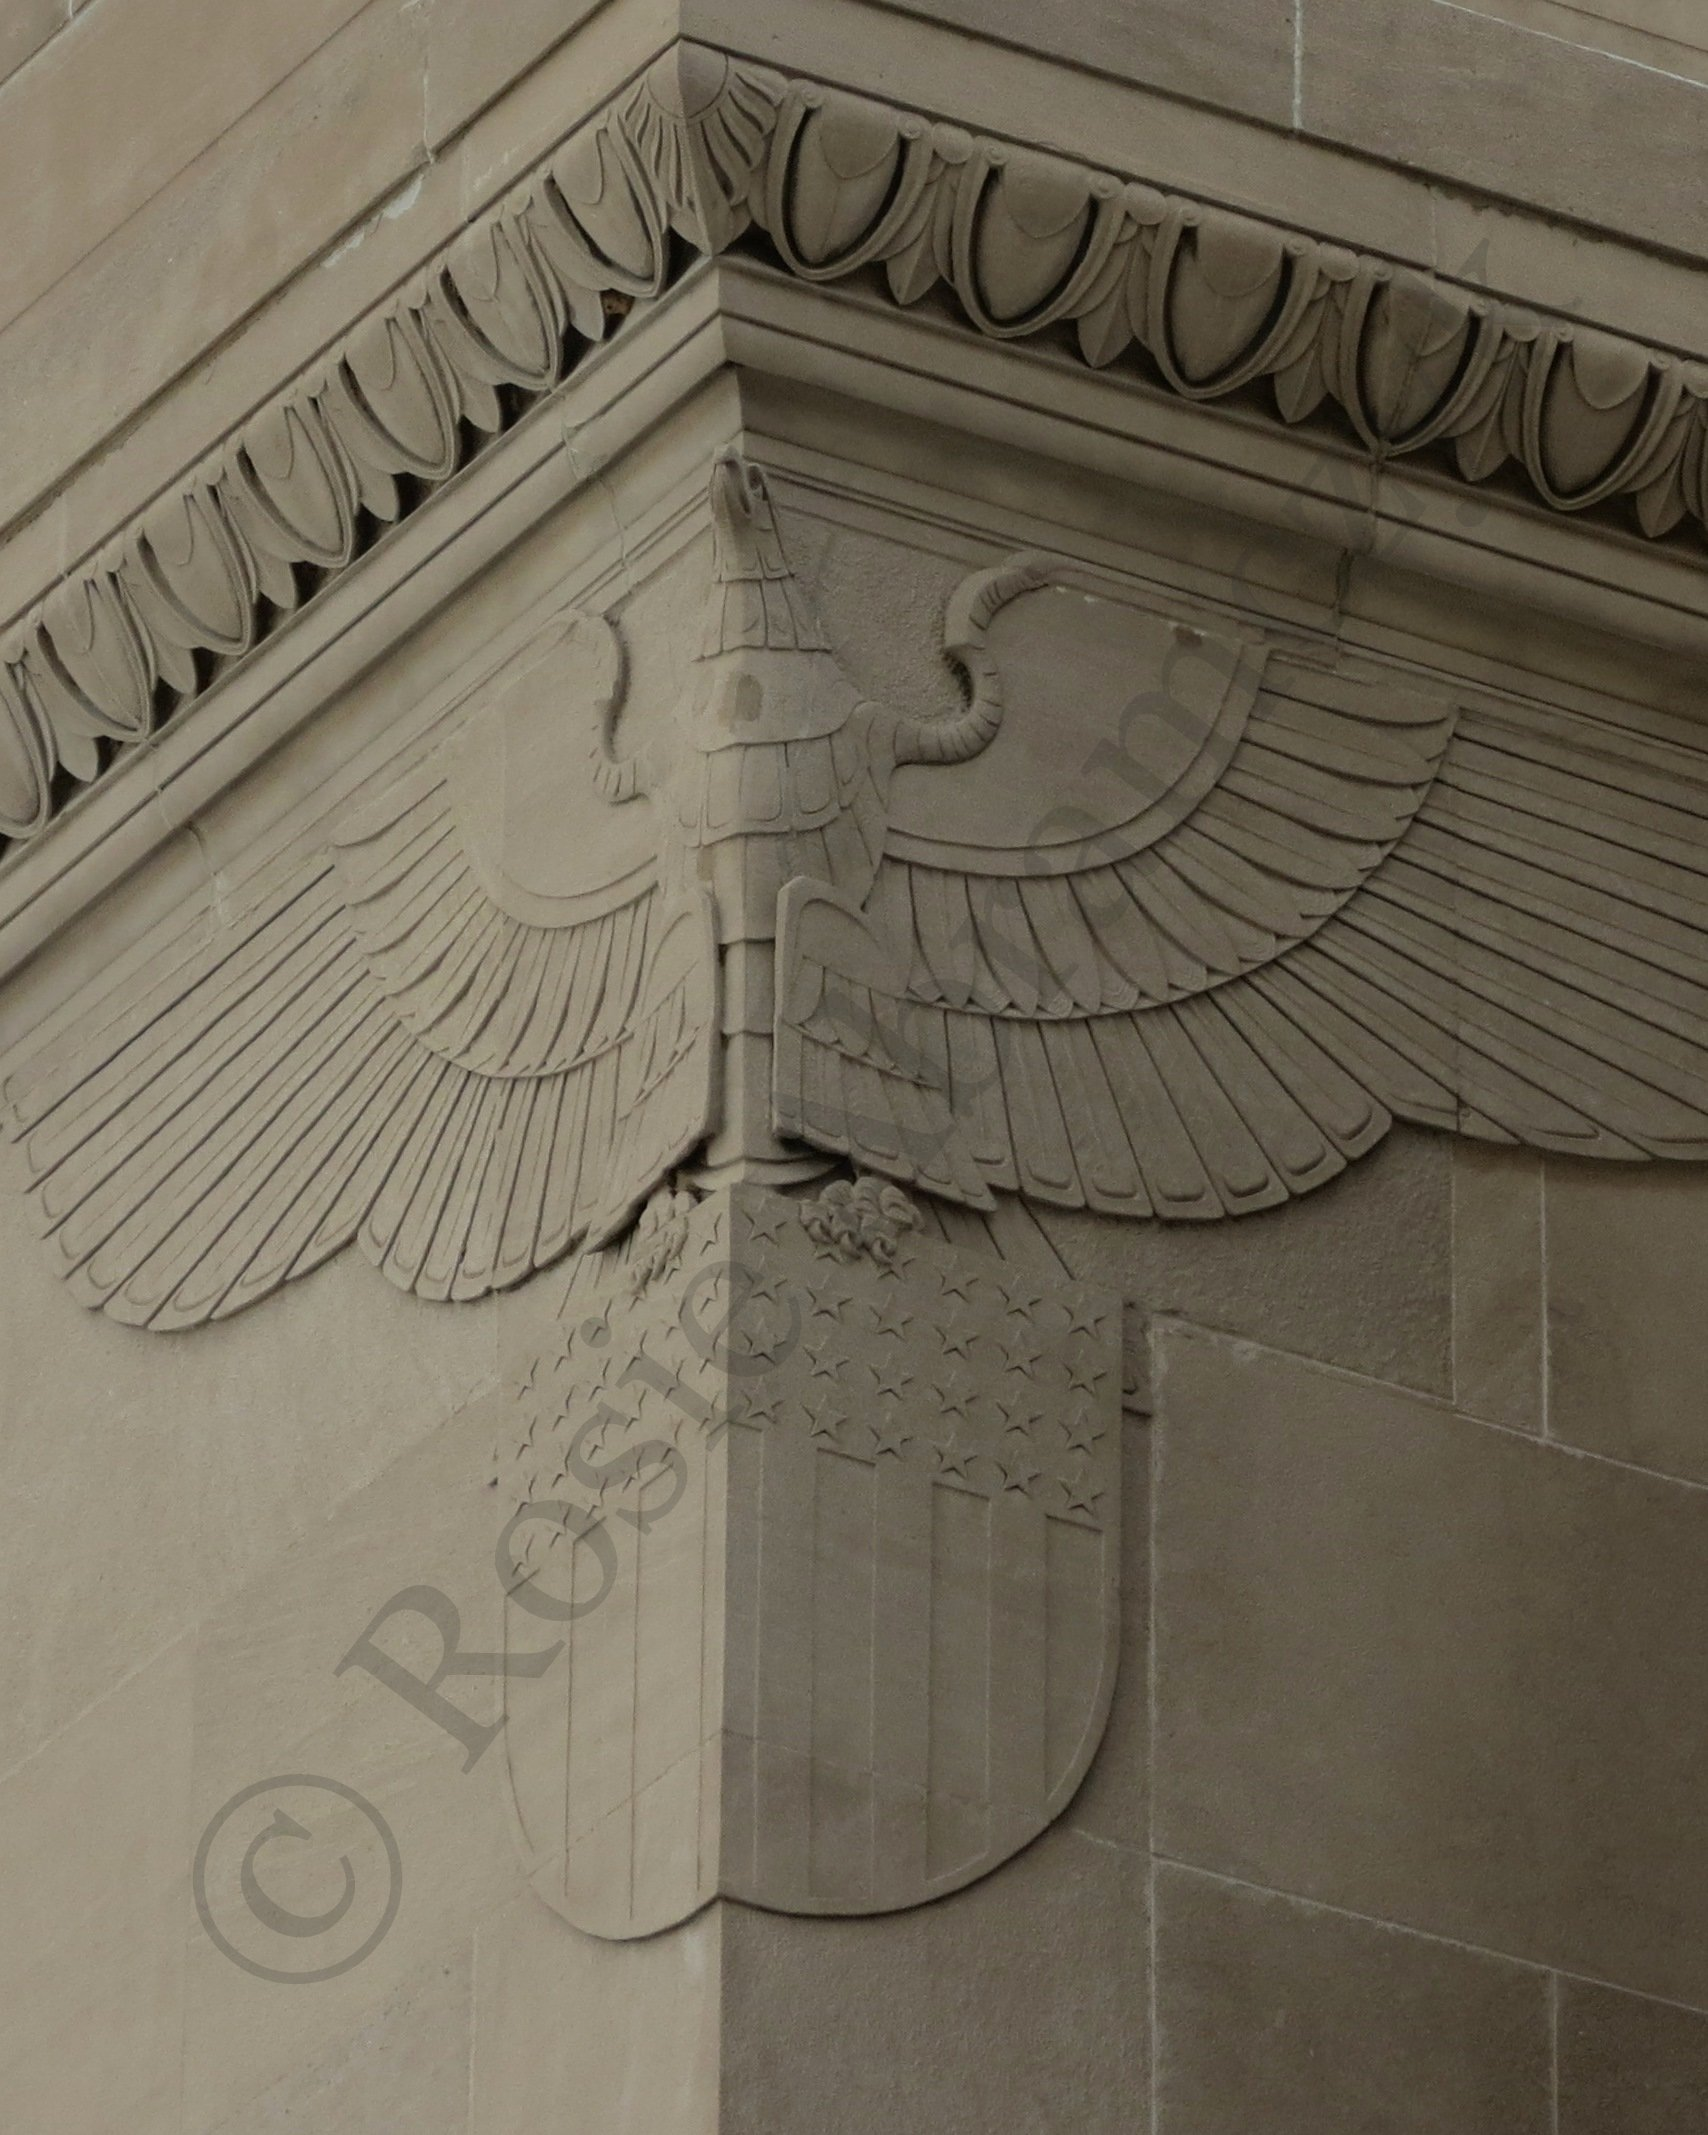 Eagle on the Federal Reserve Bank, St. Louis, by Rosie Abramczyk, 2013